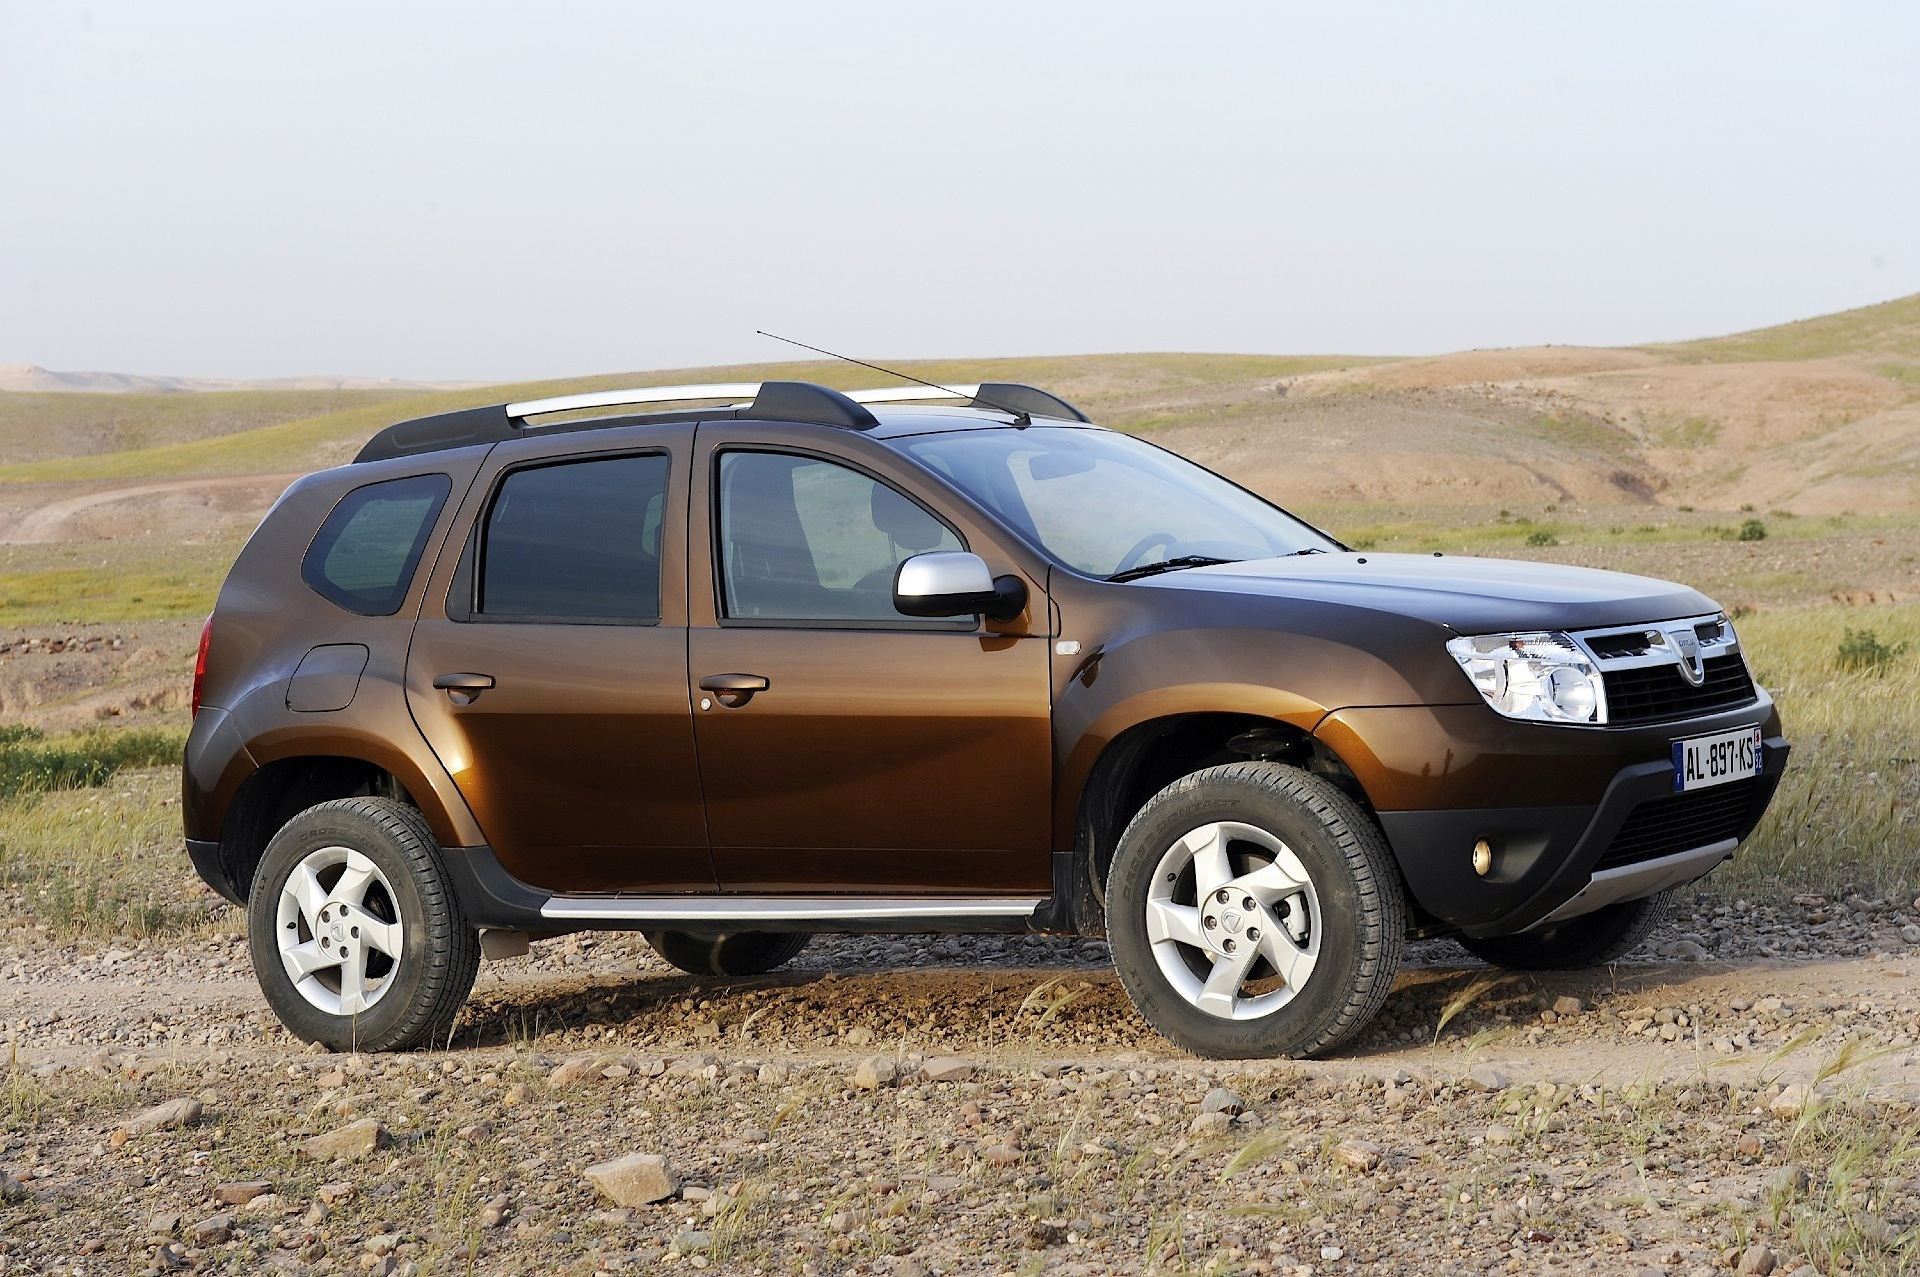 dacia duster specs 2010 2011 2012 2013 autoevolution. Black Bedroom Furniture Sets. Home Design Ideas